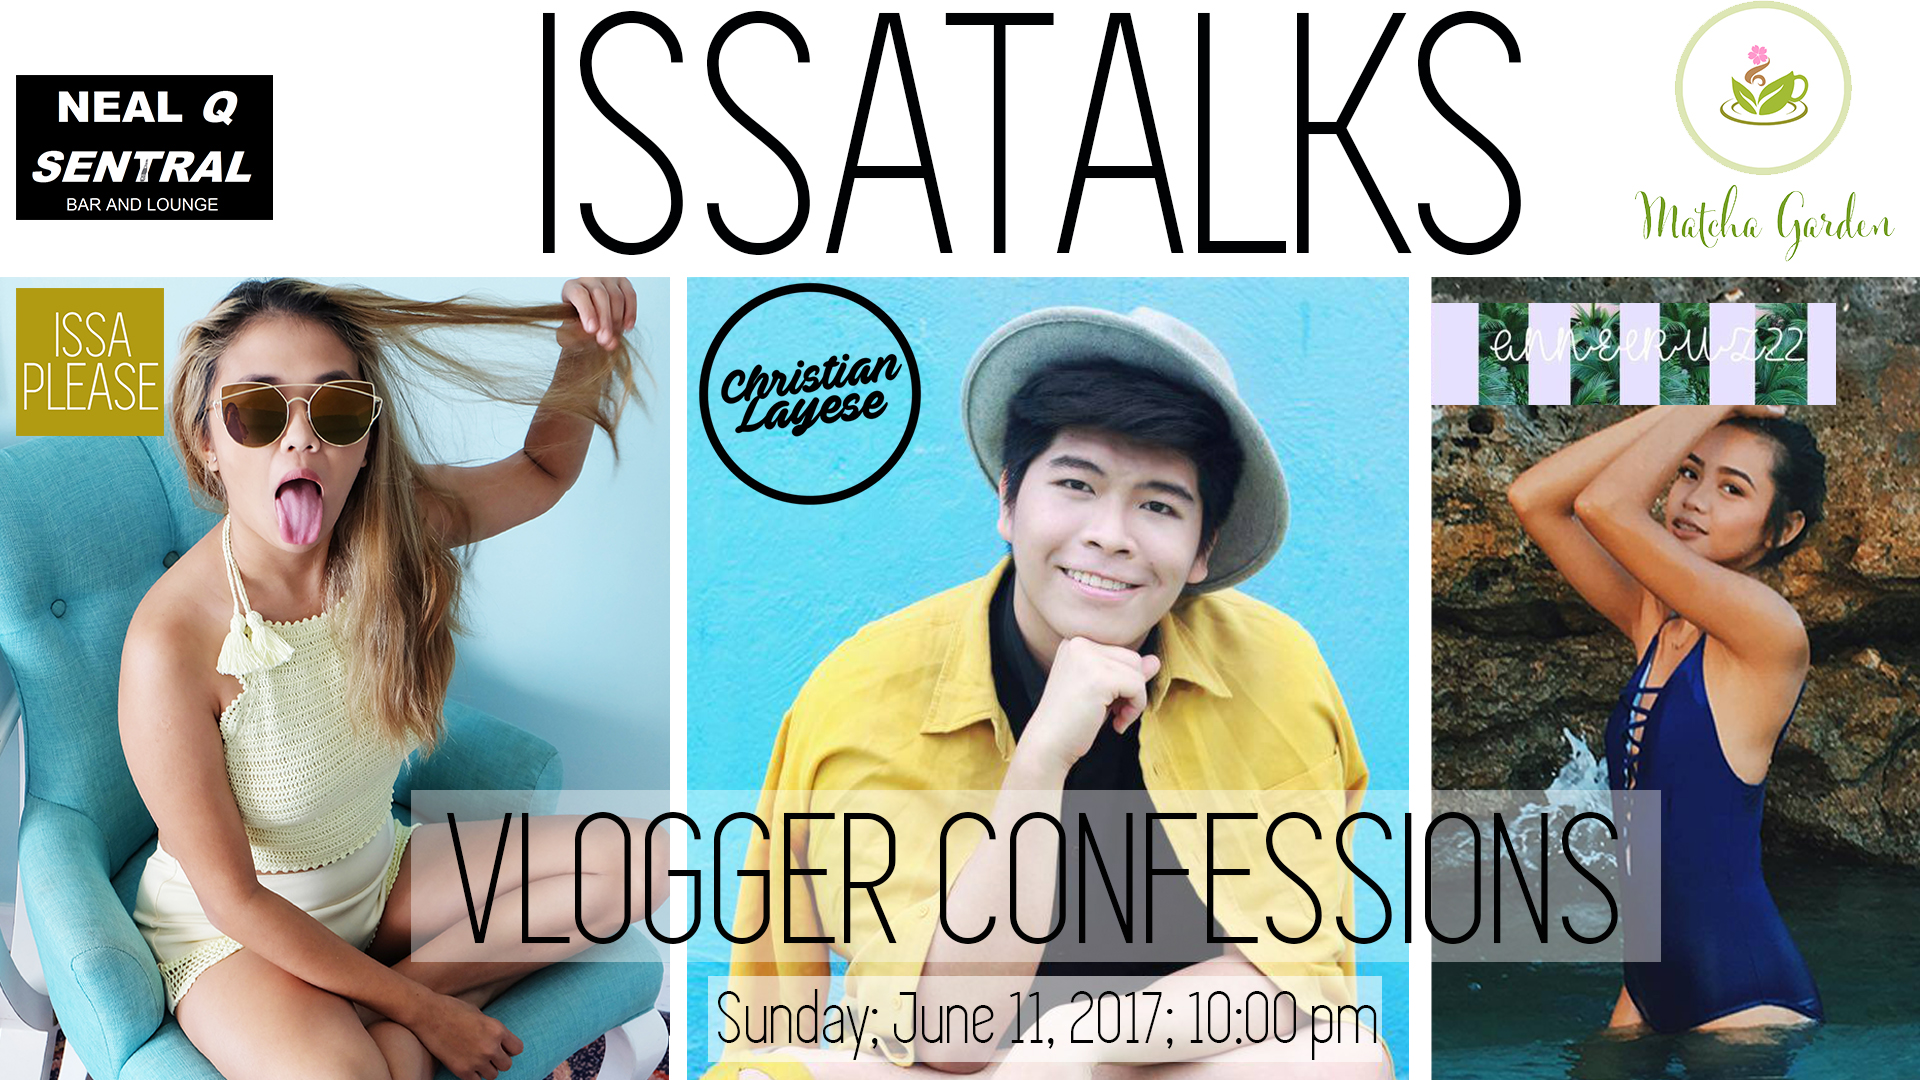 IssaTalks Episode 16: Everything You Need To Know About Vlogging Part I & II ft. Christian Layese & Anne Cruz